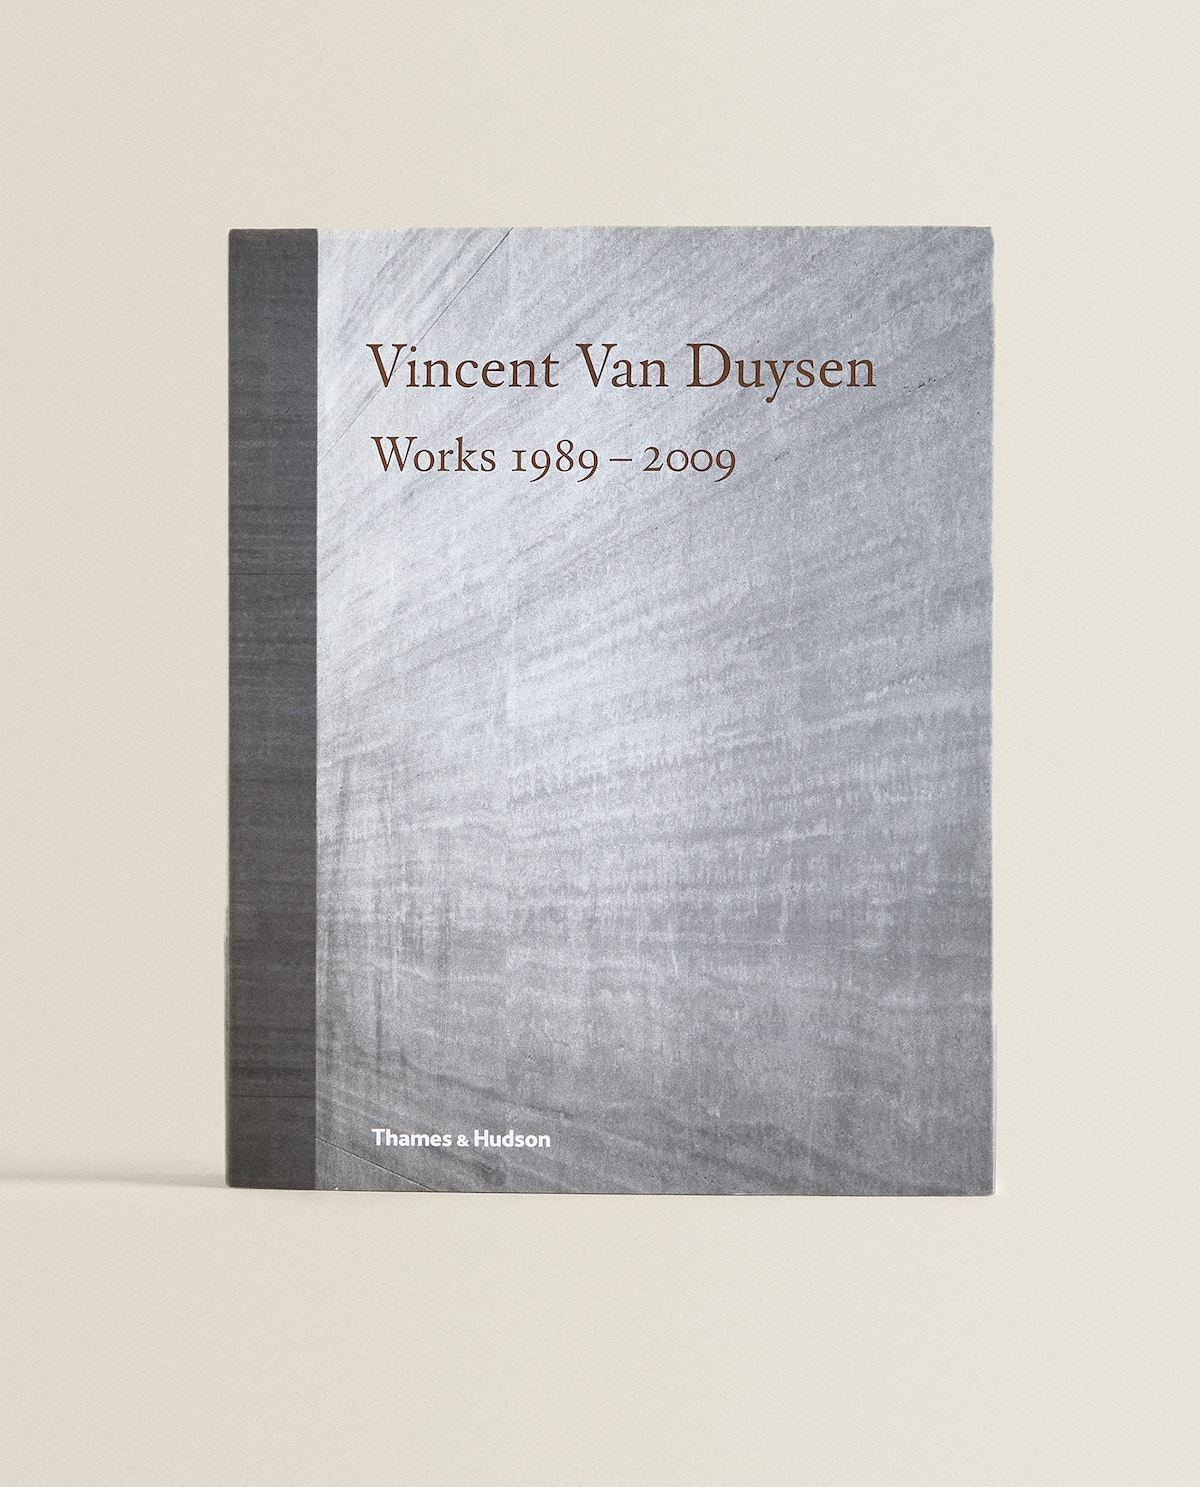 Vincent Van Duysen Book  Decor Accessories   Decoration   Living Room by Zara Home